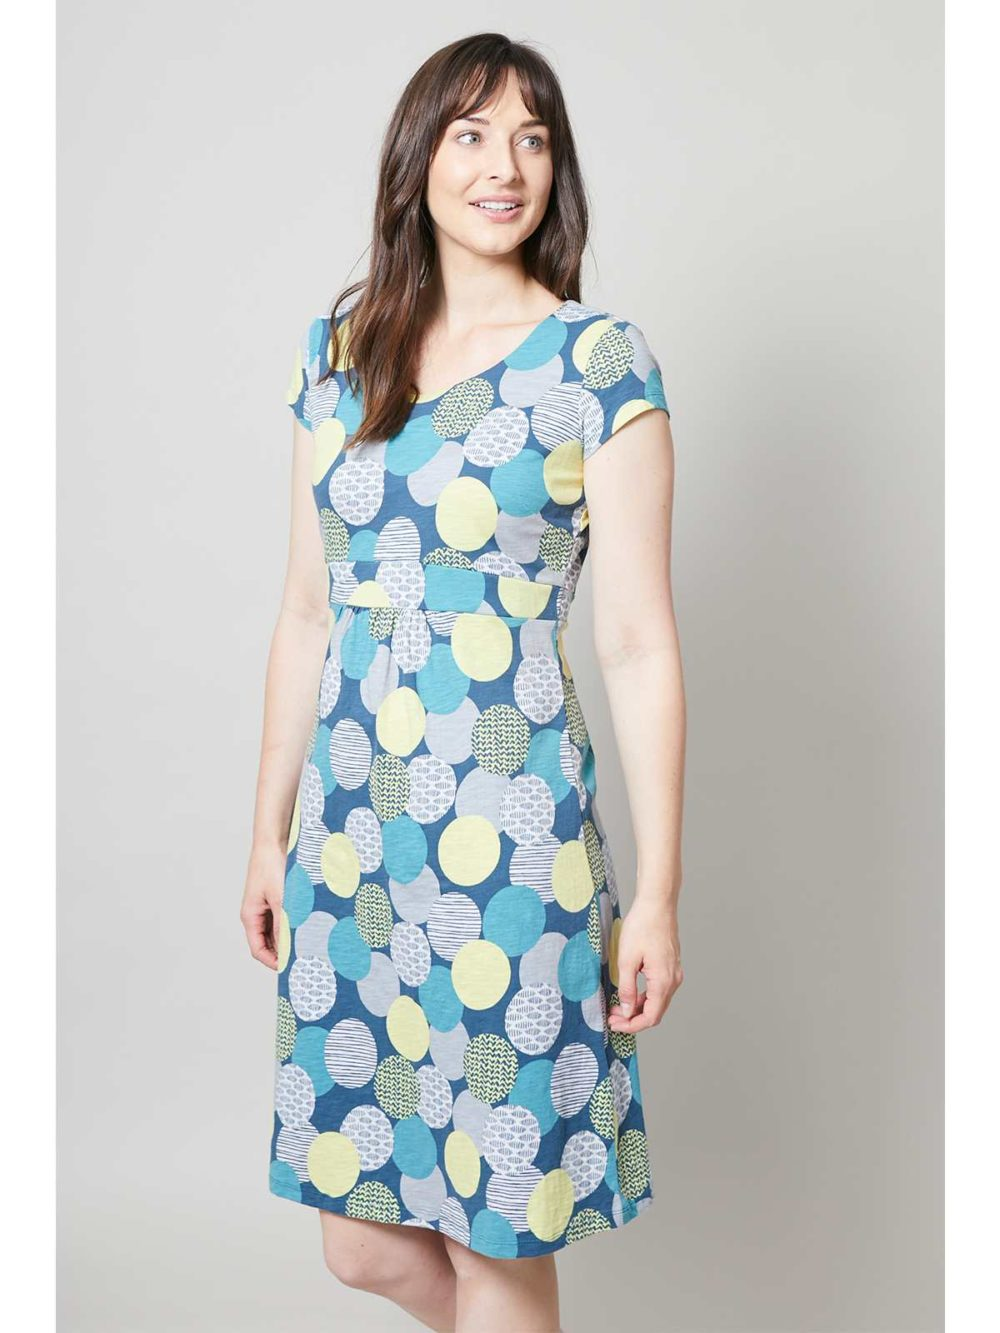 High Tide Dress Lily and Me Katie Kerr Women's Clothing